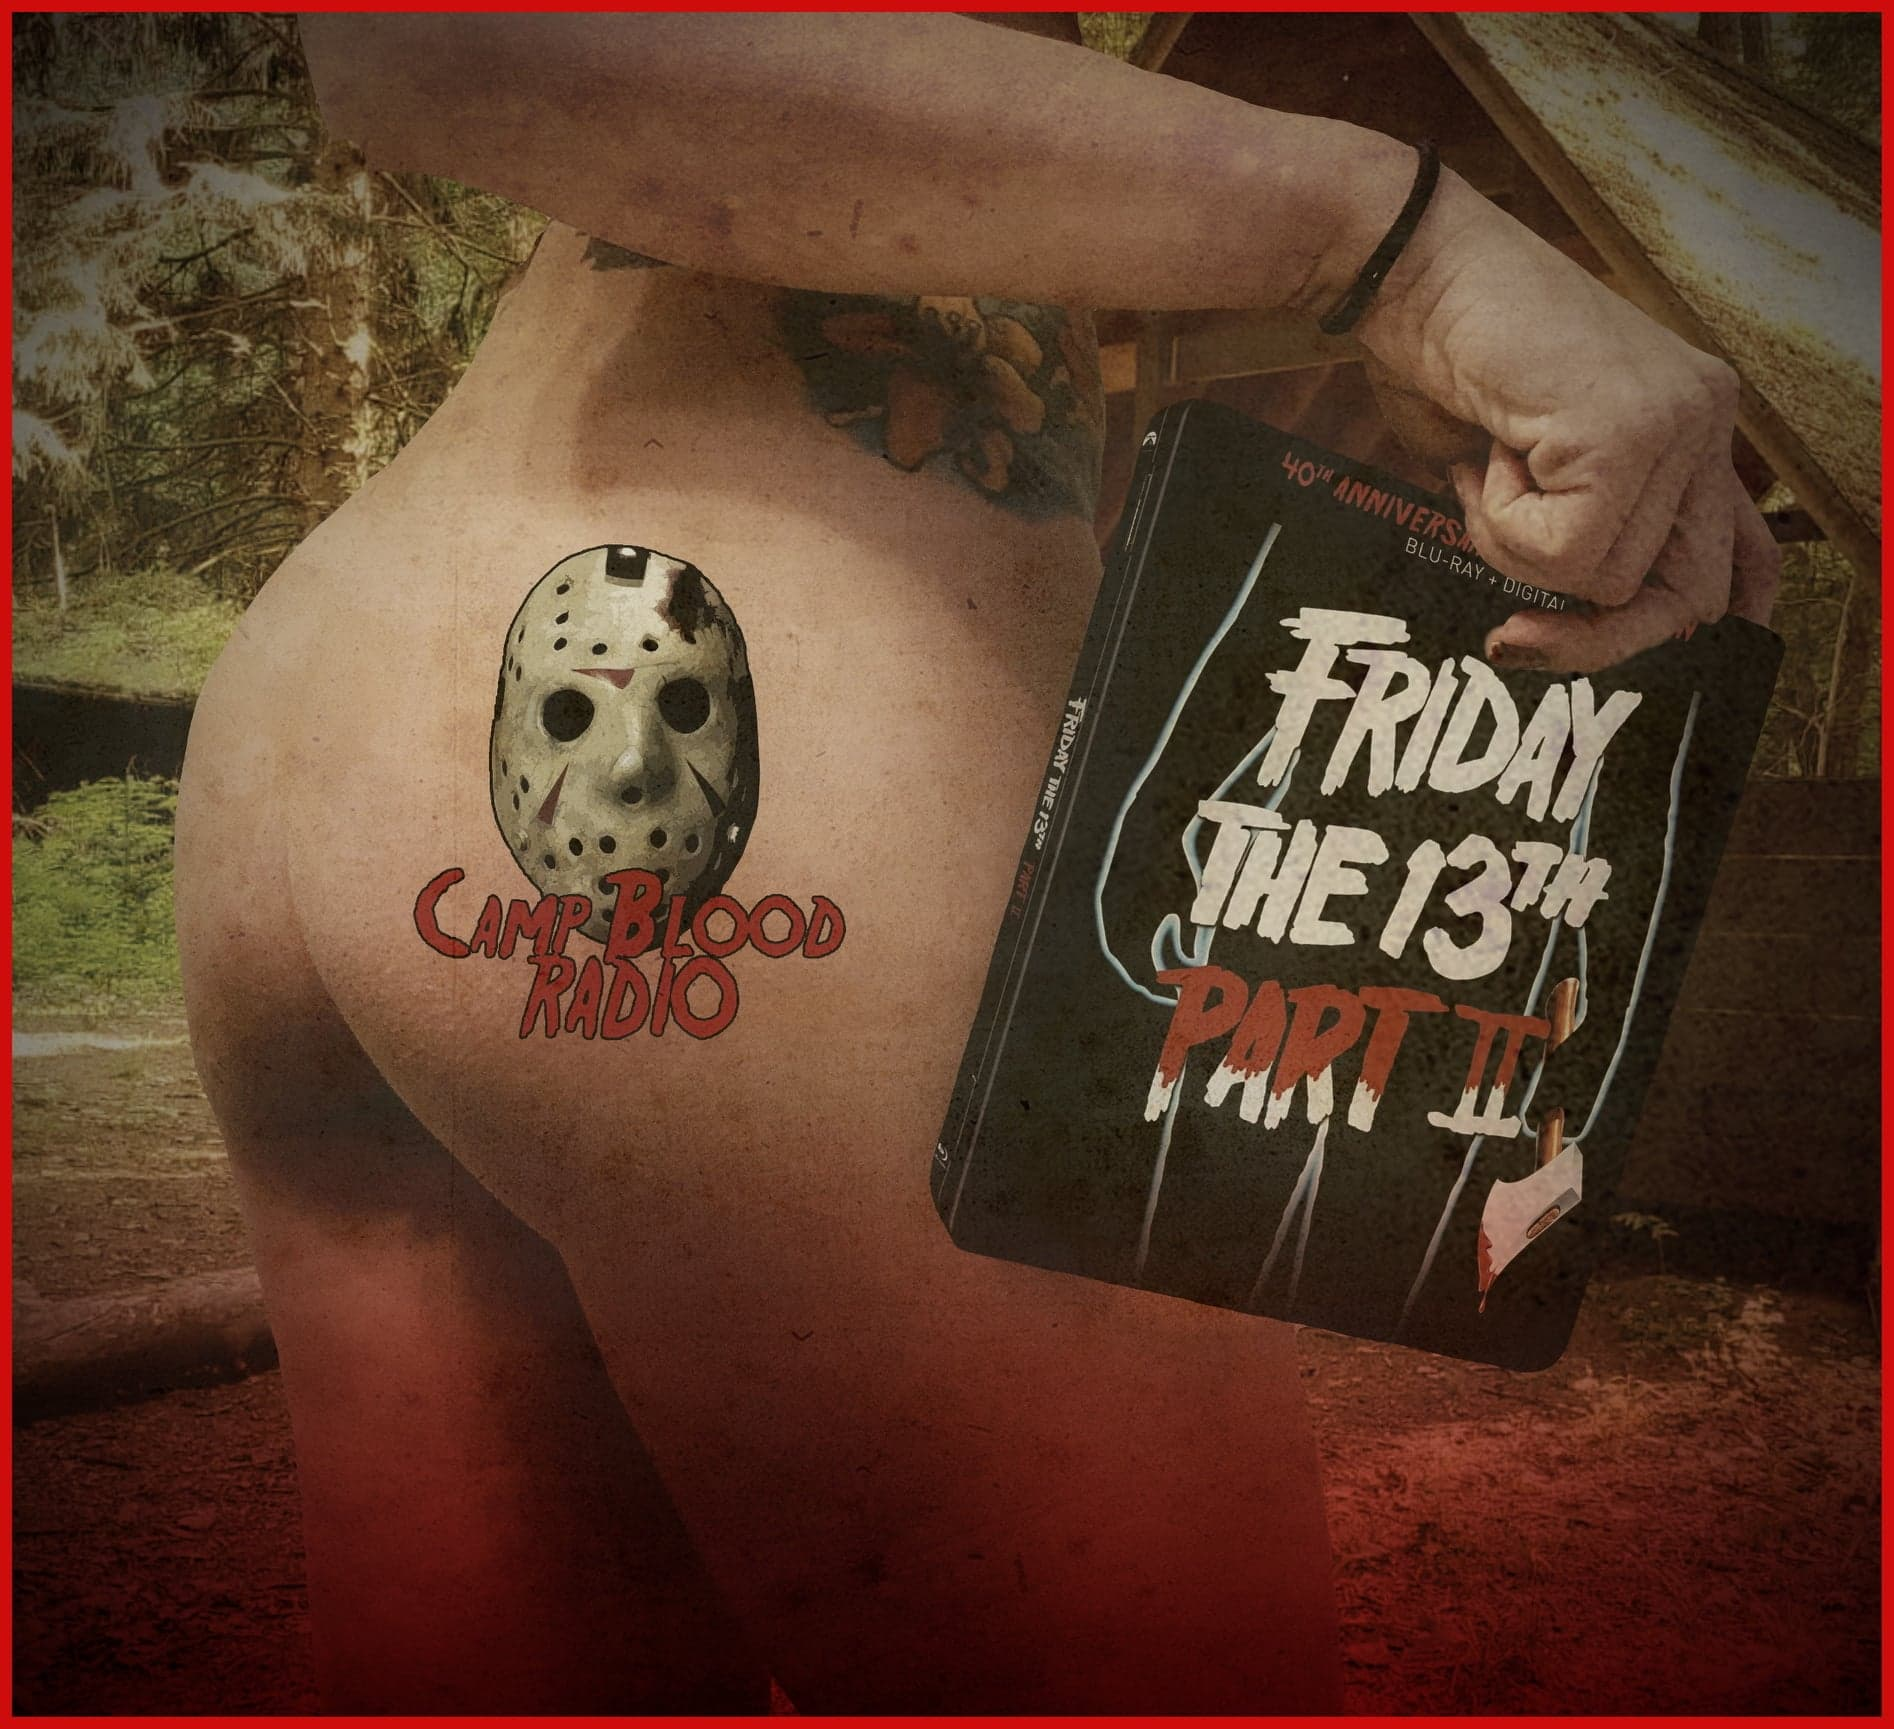 The Boring Friday the 13th Part 2 – 40th Steelbook